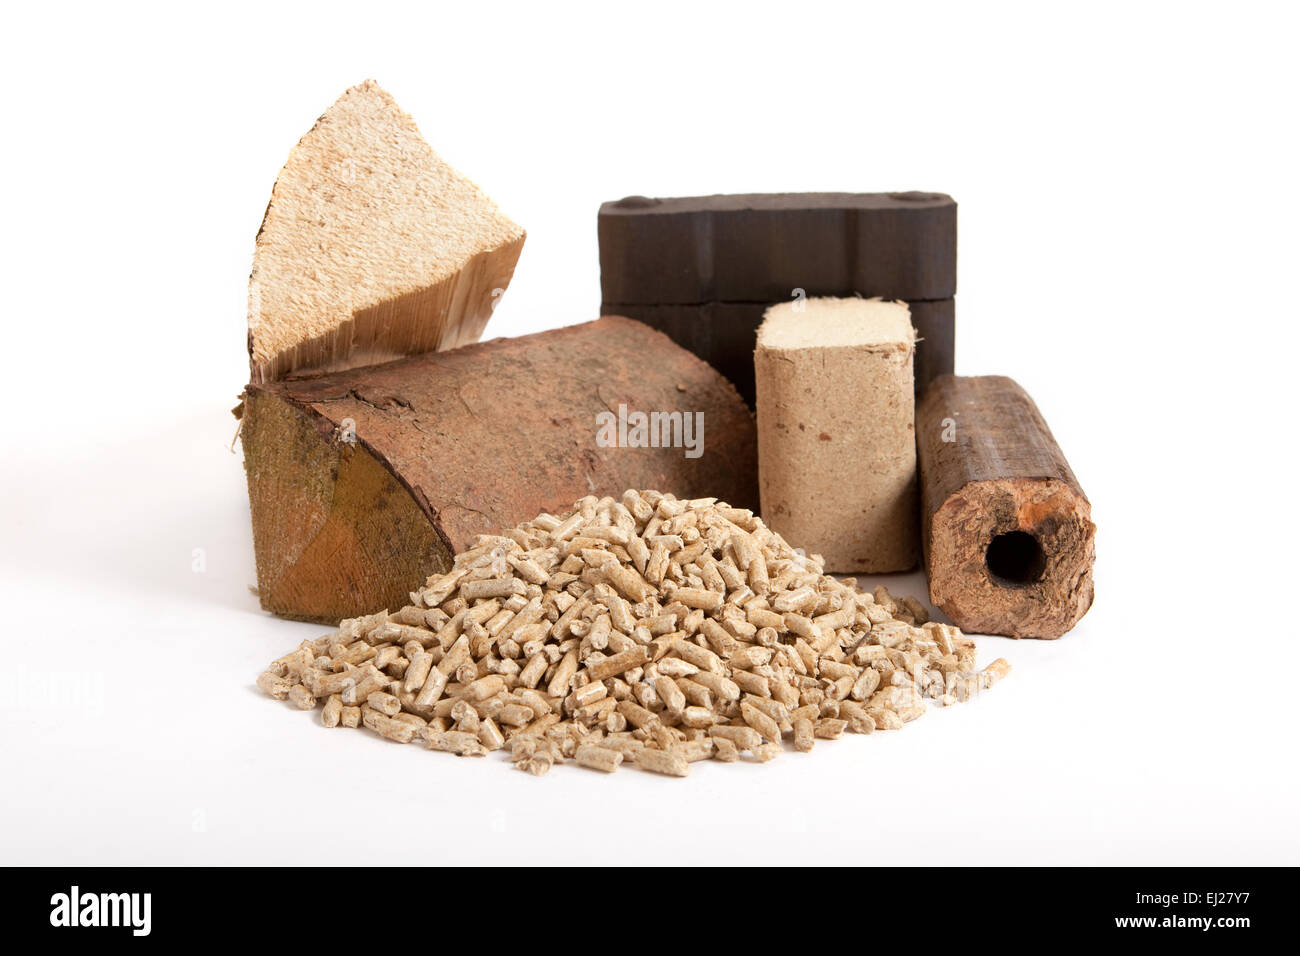 collection of fossil fuels on white background, isolated, firewood, coal, wooden briquettes and oven pellets, - Stock Image